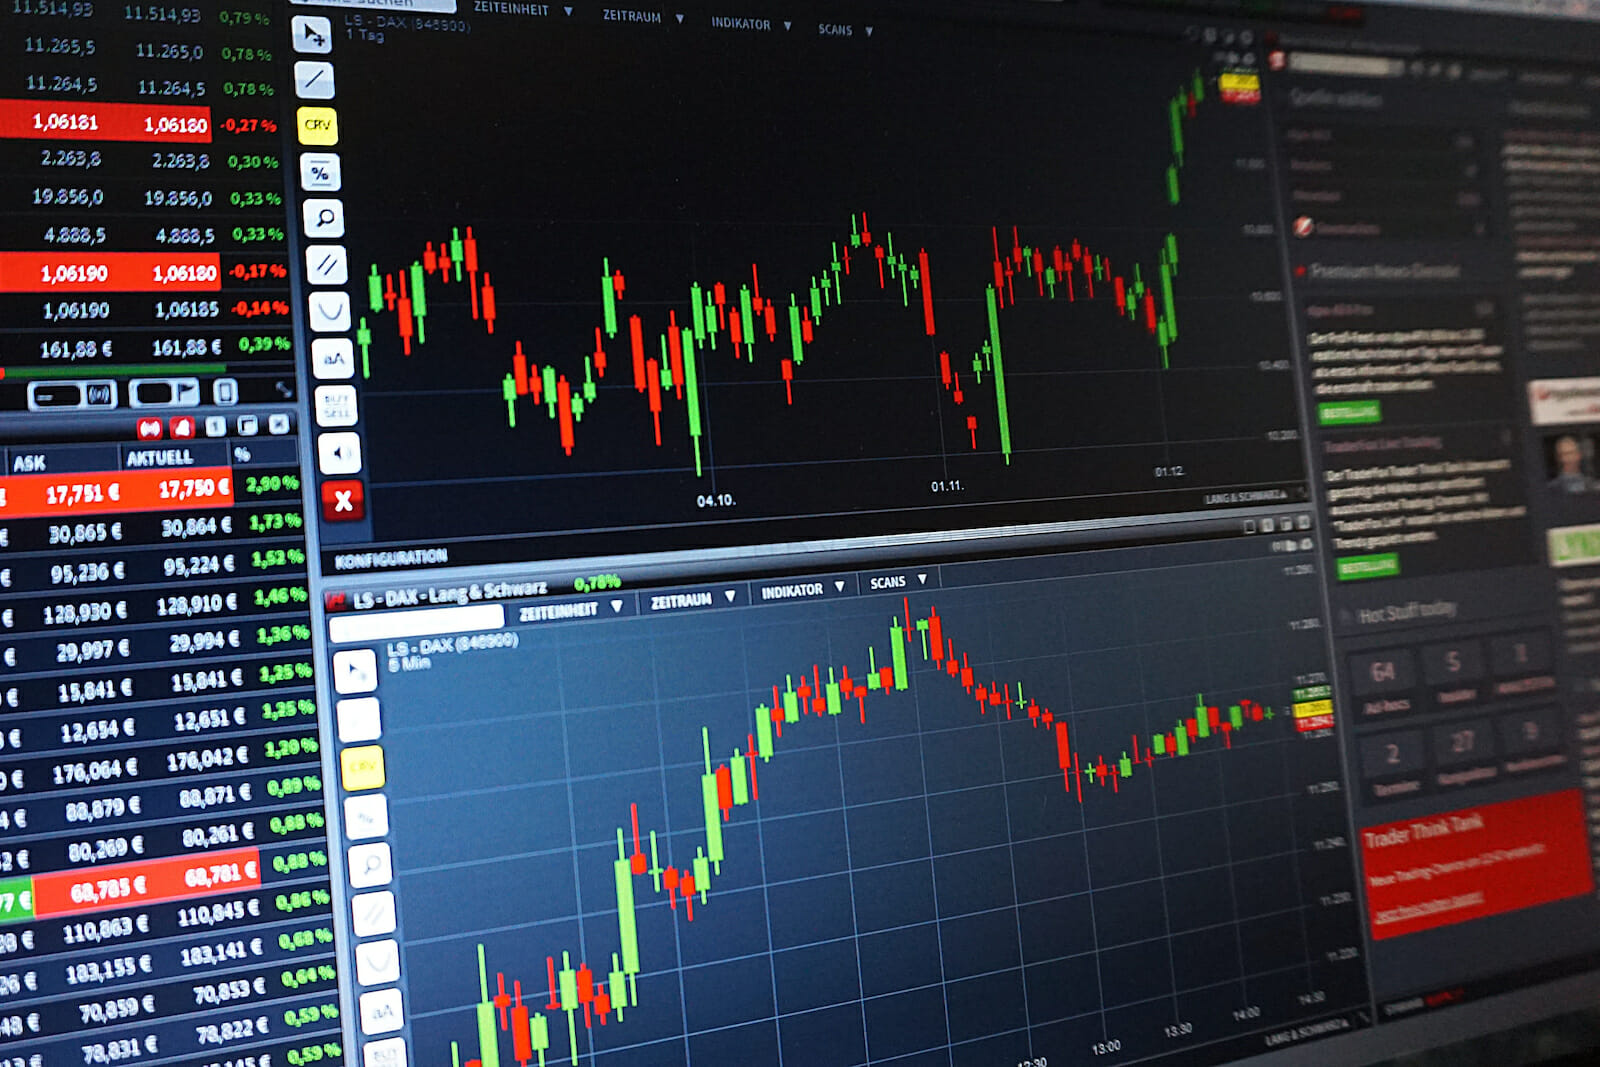 Why need to choose Xtrade?